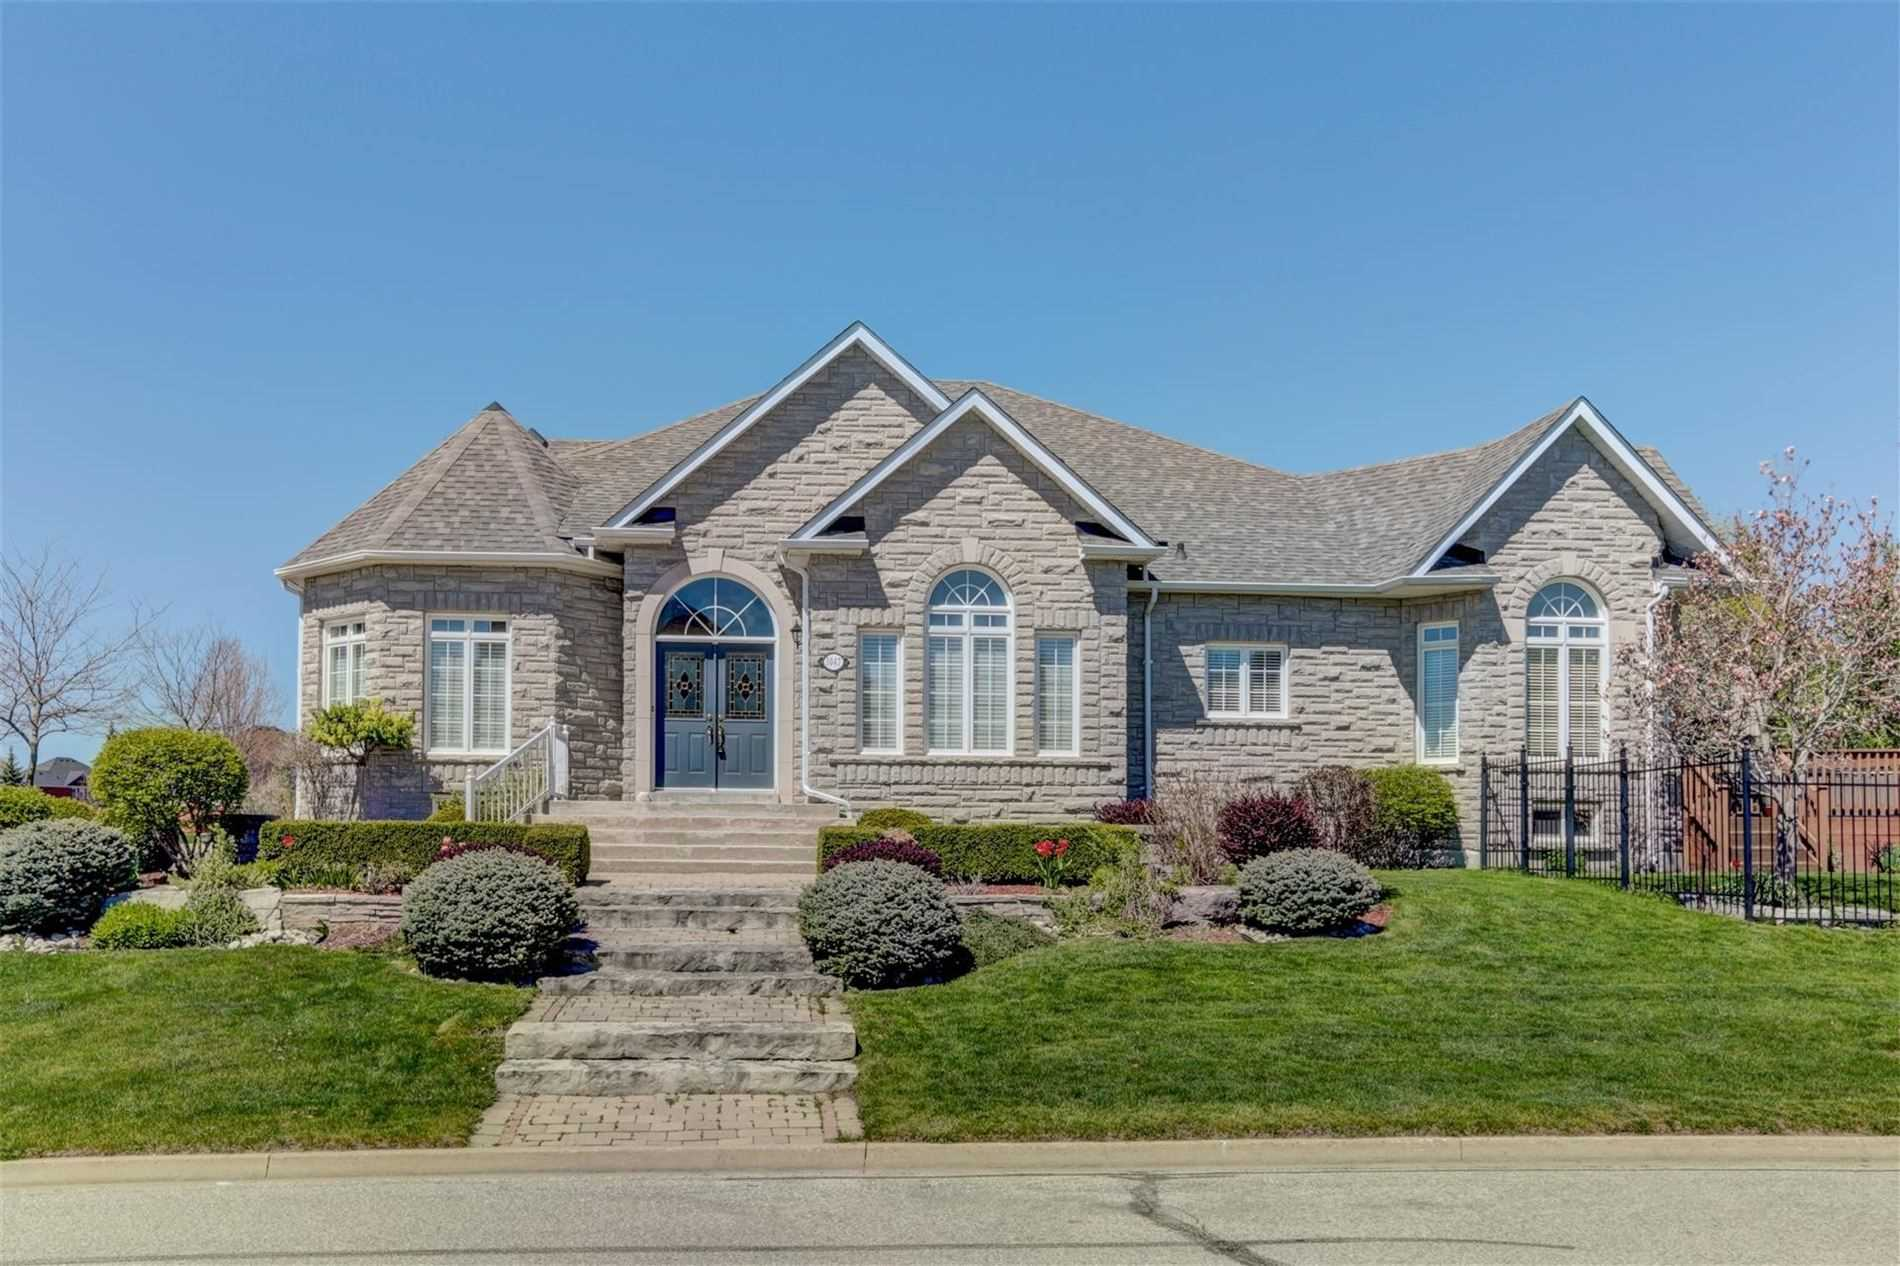 1047 Mantopic Rd, Newmarket, Ontario (ID N4768152)